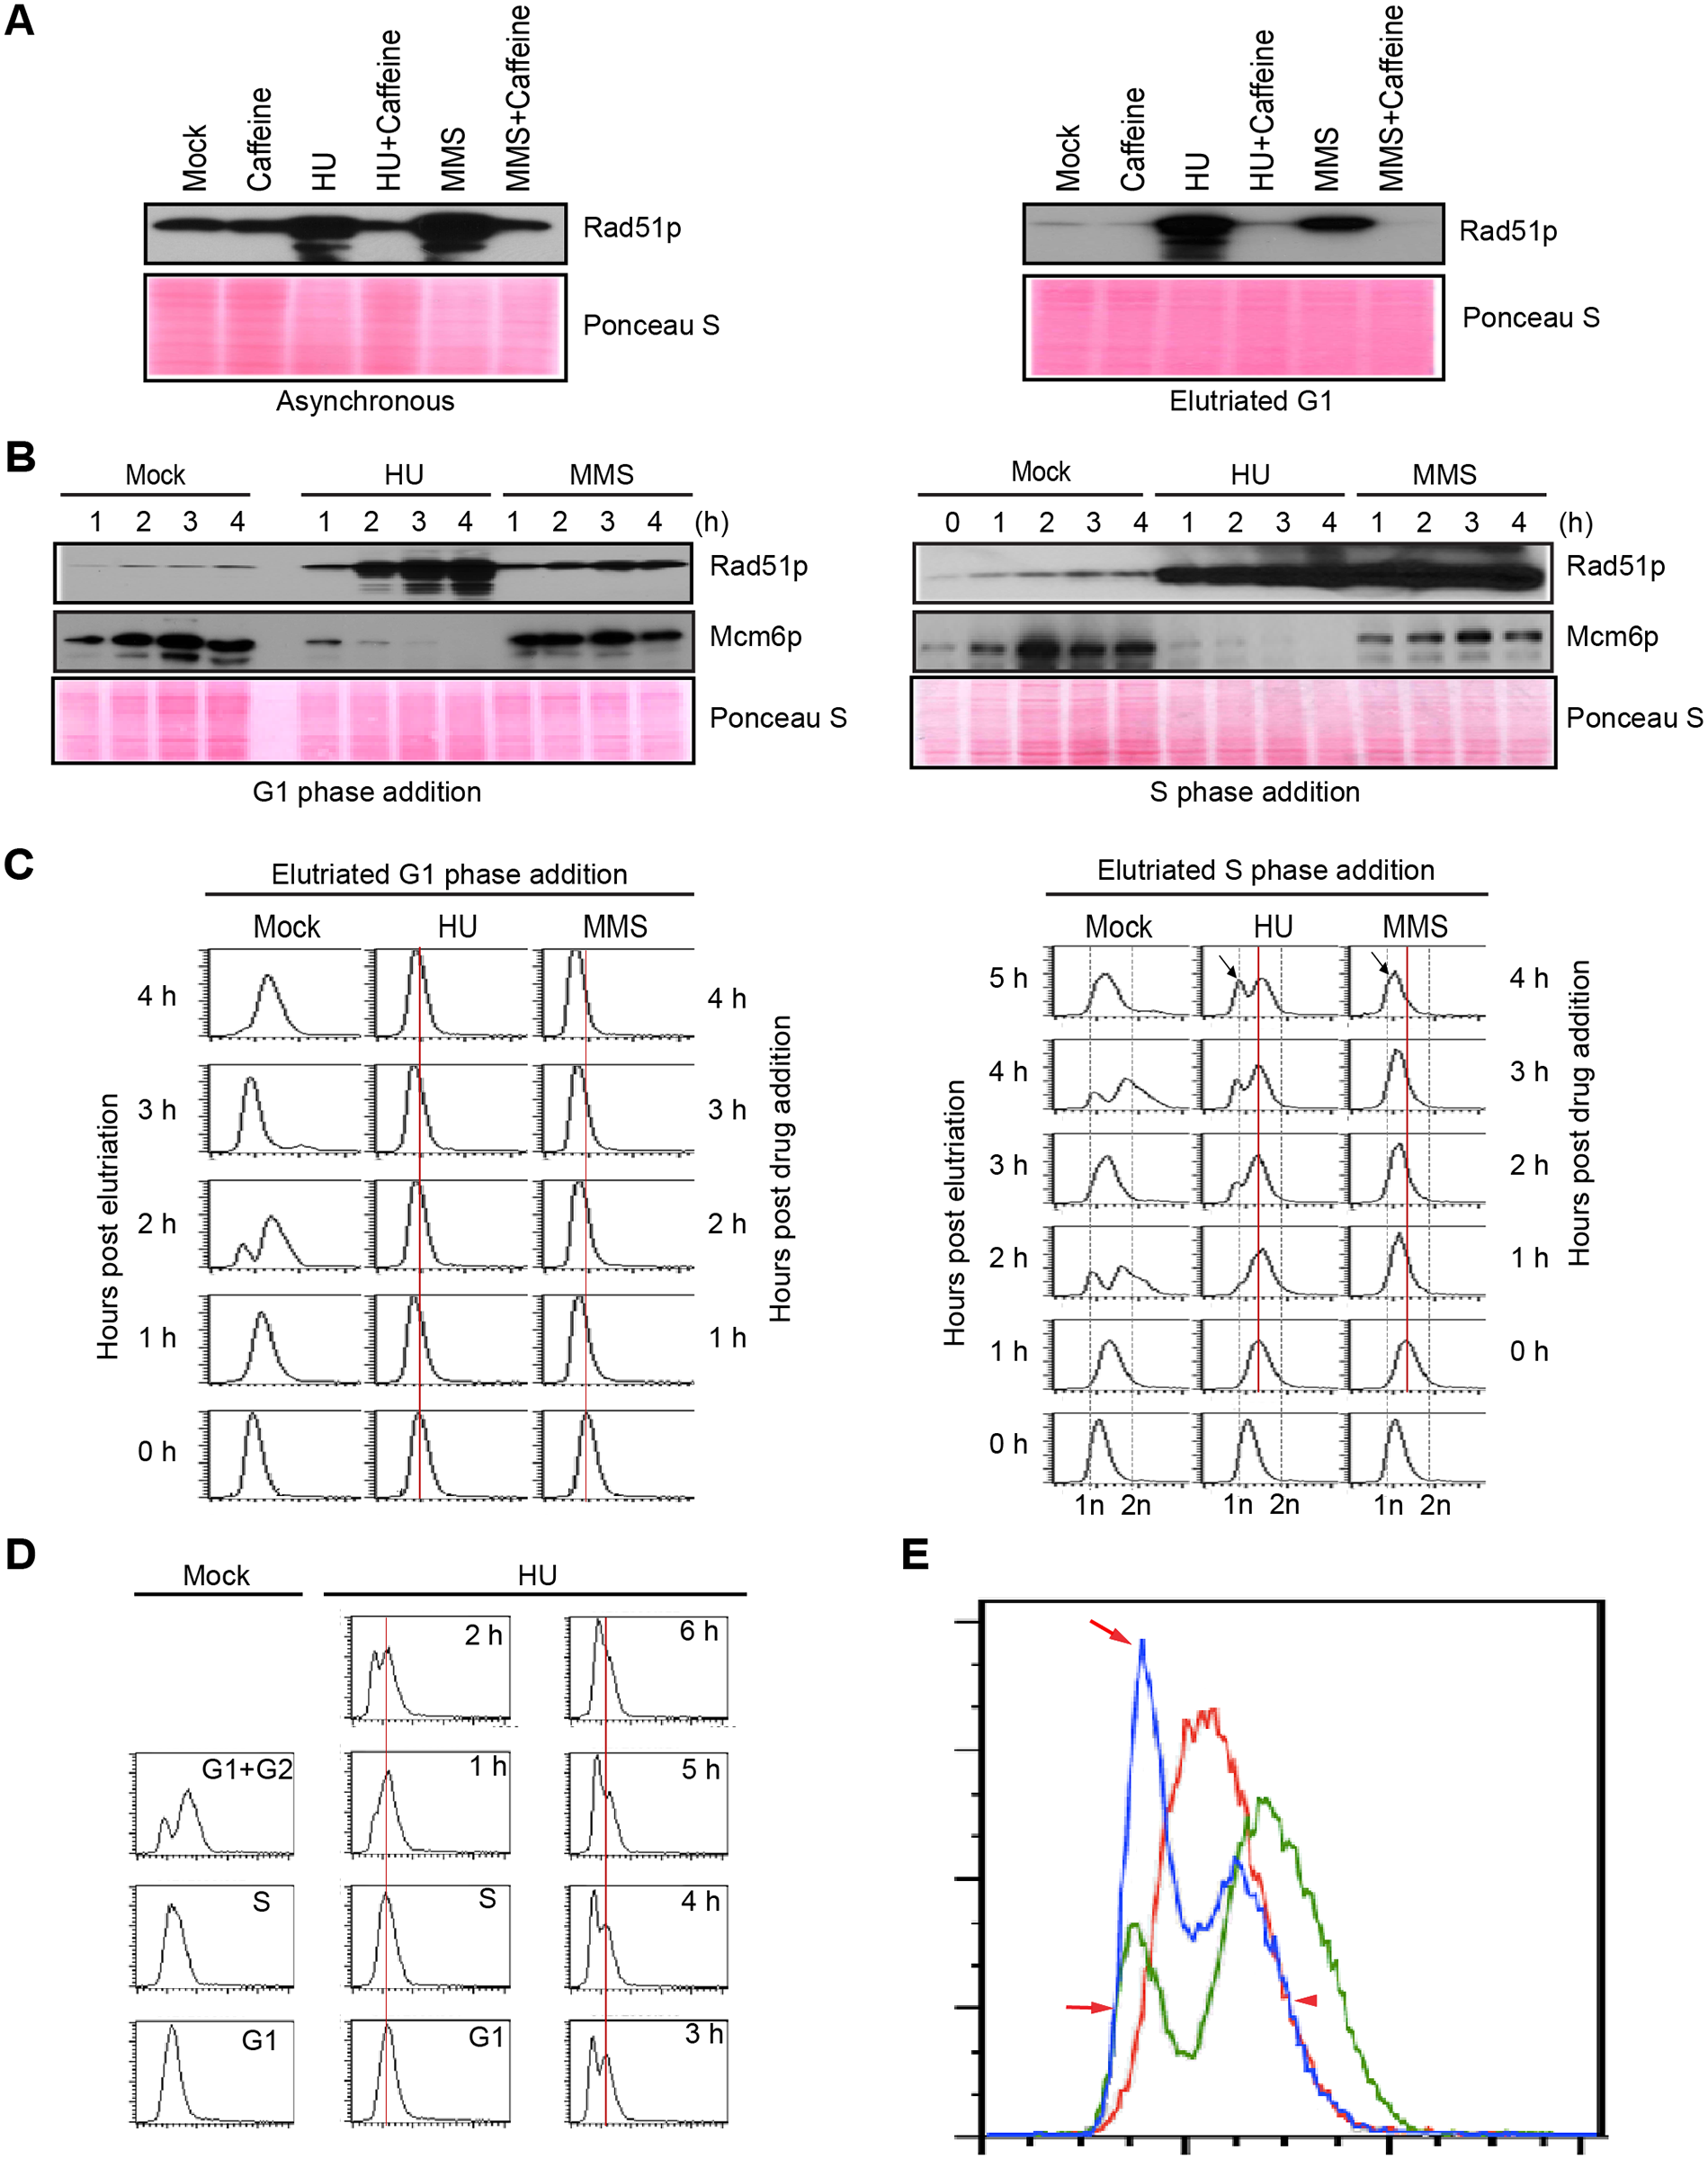 Characterization of HU and MMS induced checkpoint responses.